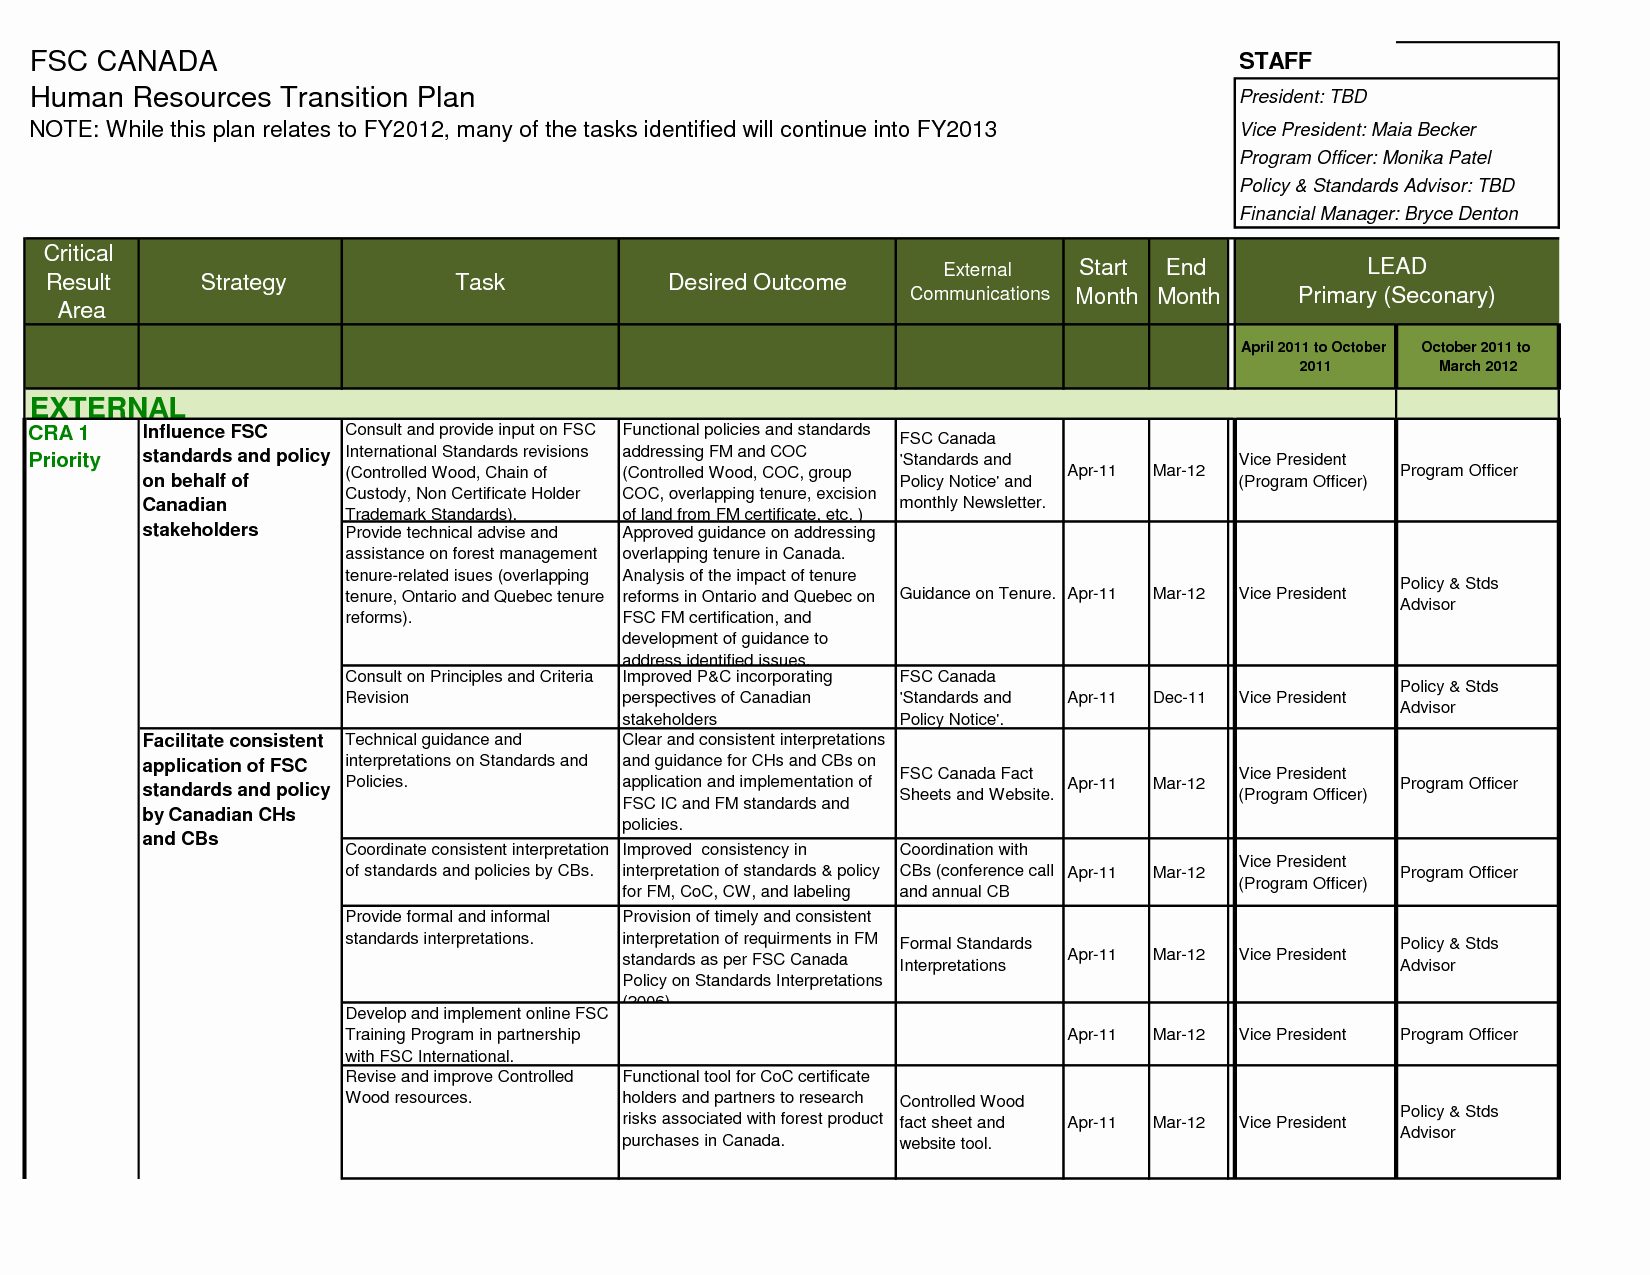 Project Transition Plan Template Lovely Transition Plan Template